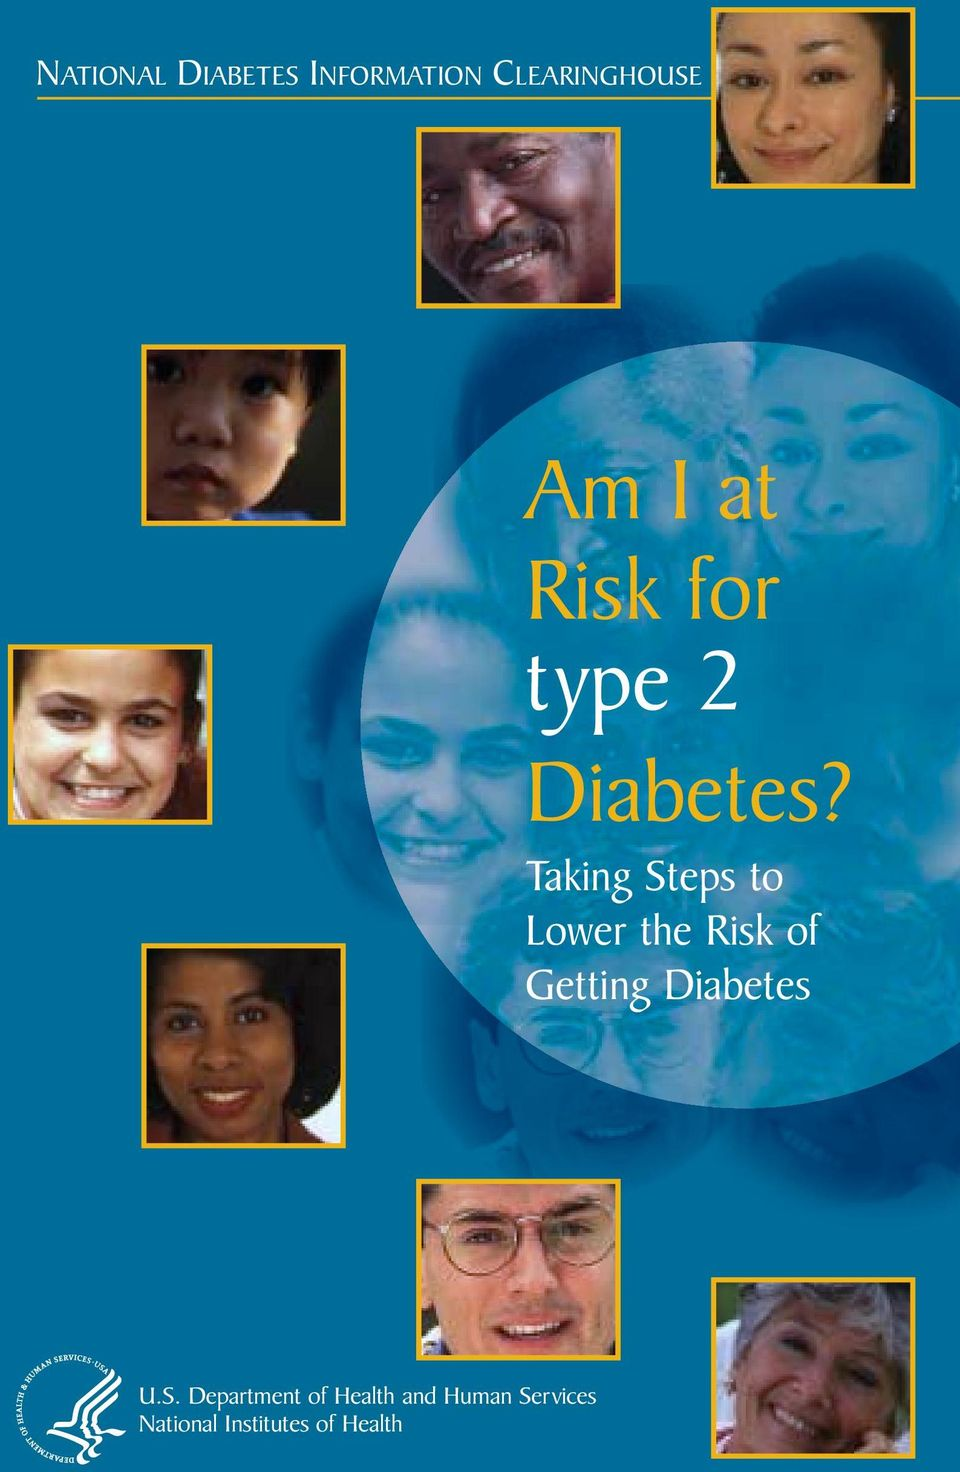 Taking Steps to Lower the Risk of Getting Diabetes